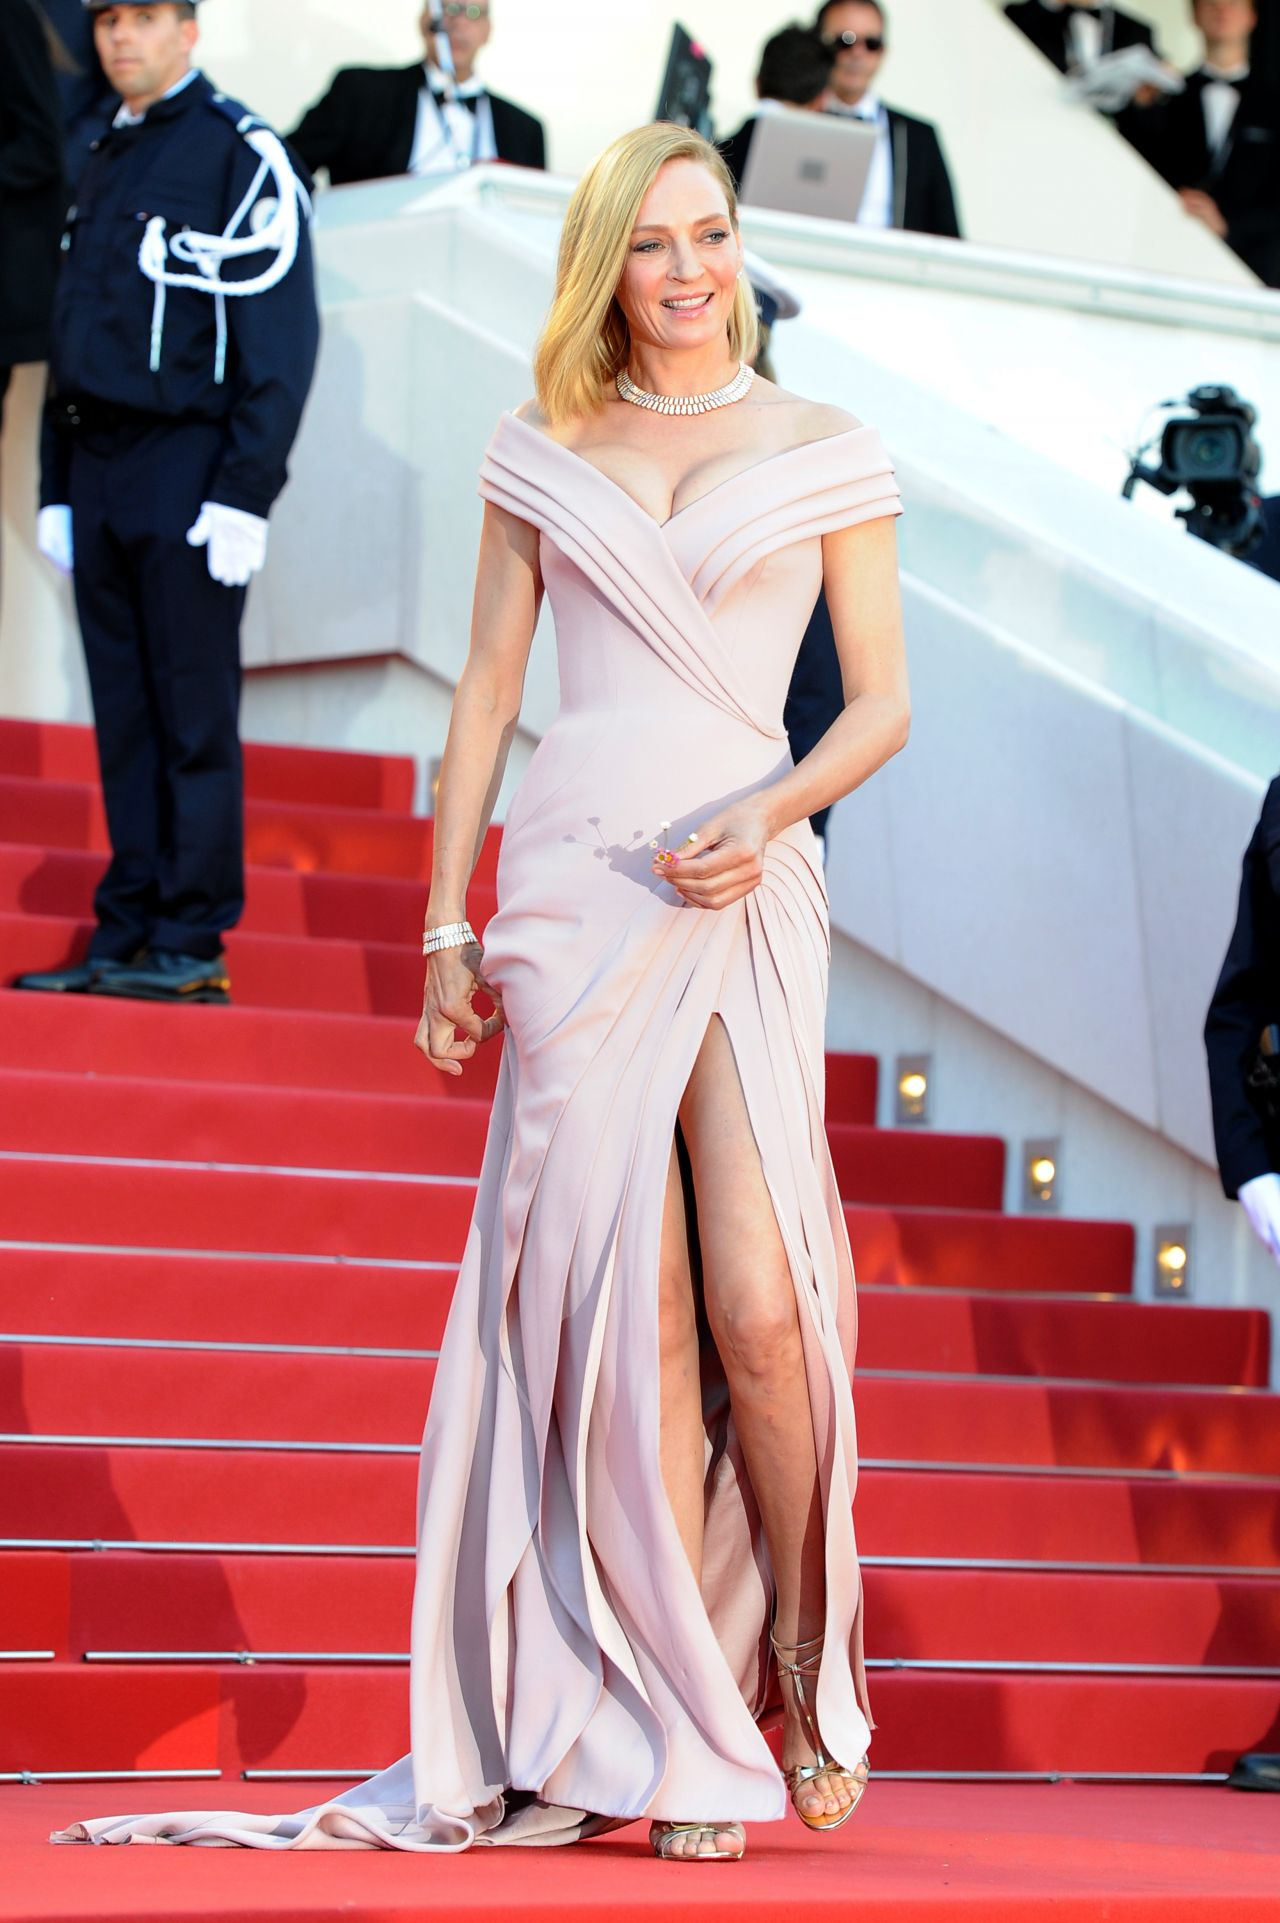 uma-thurman-70th-cannes-film-festival-op